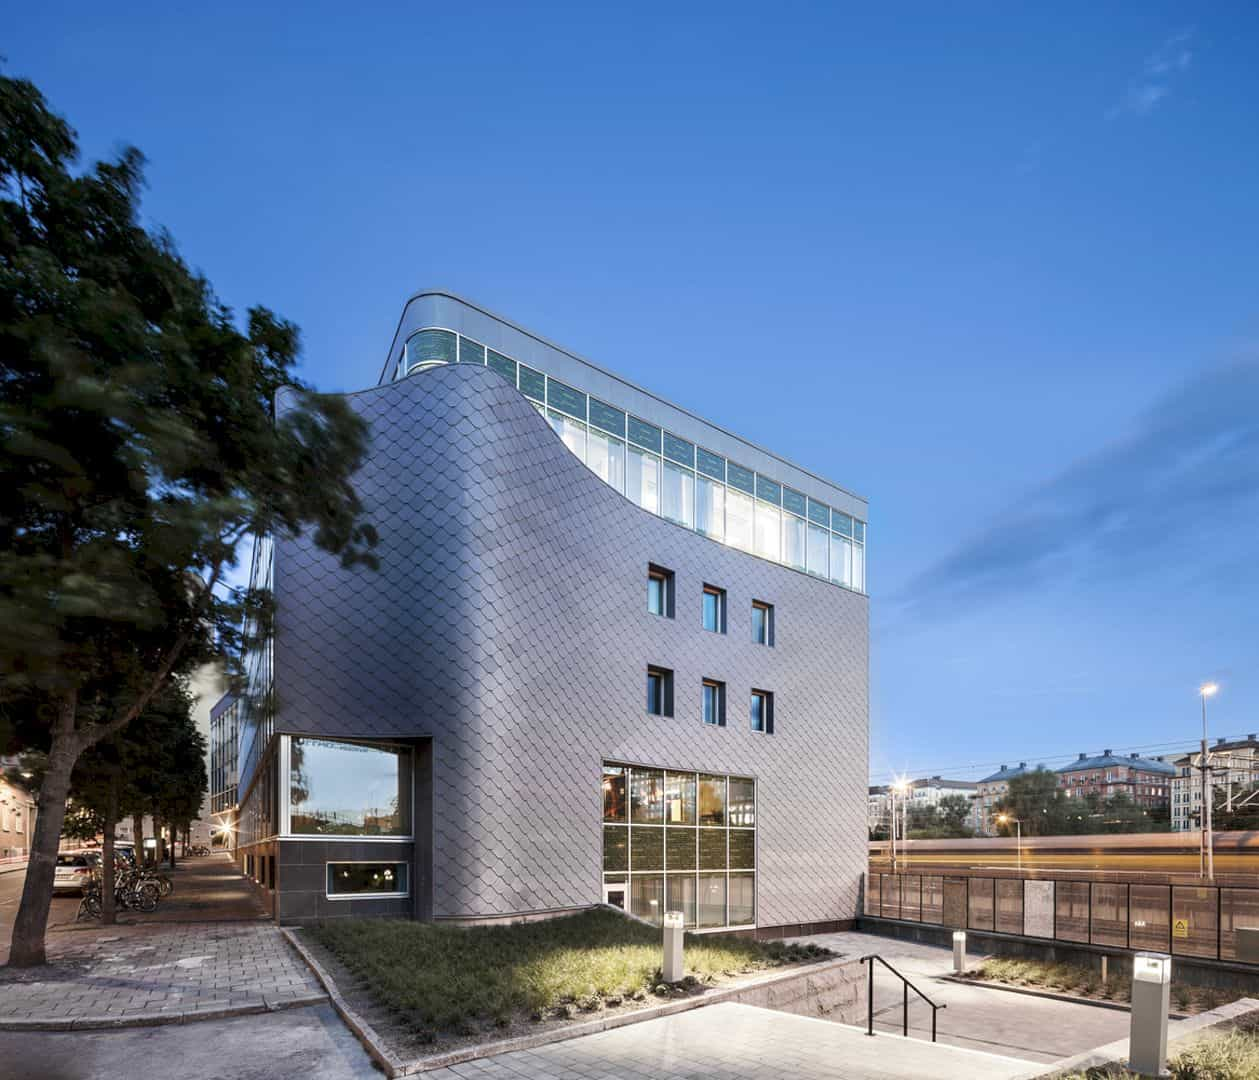 Superieur The Building Is Designed With The Modern Design To Get A Good Balance With  The High Profile Building Around It. It Is Renovated And Also Offering  Flexible ...